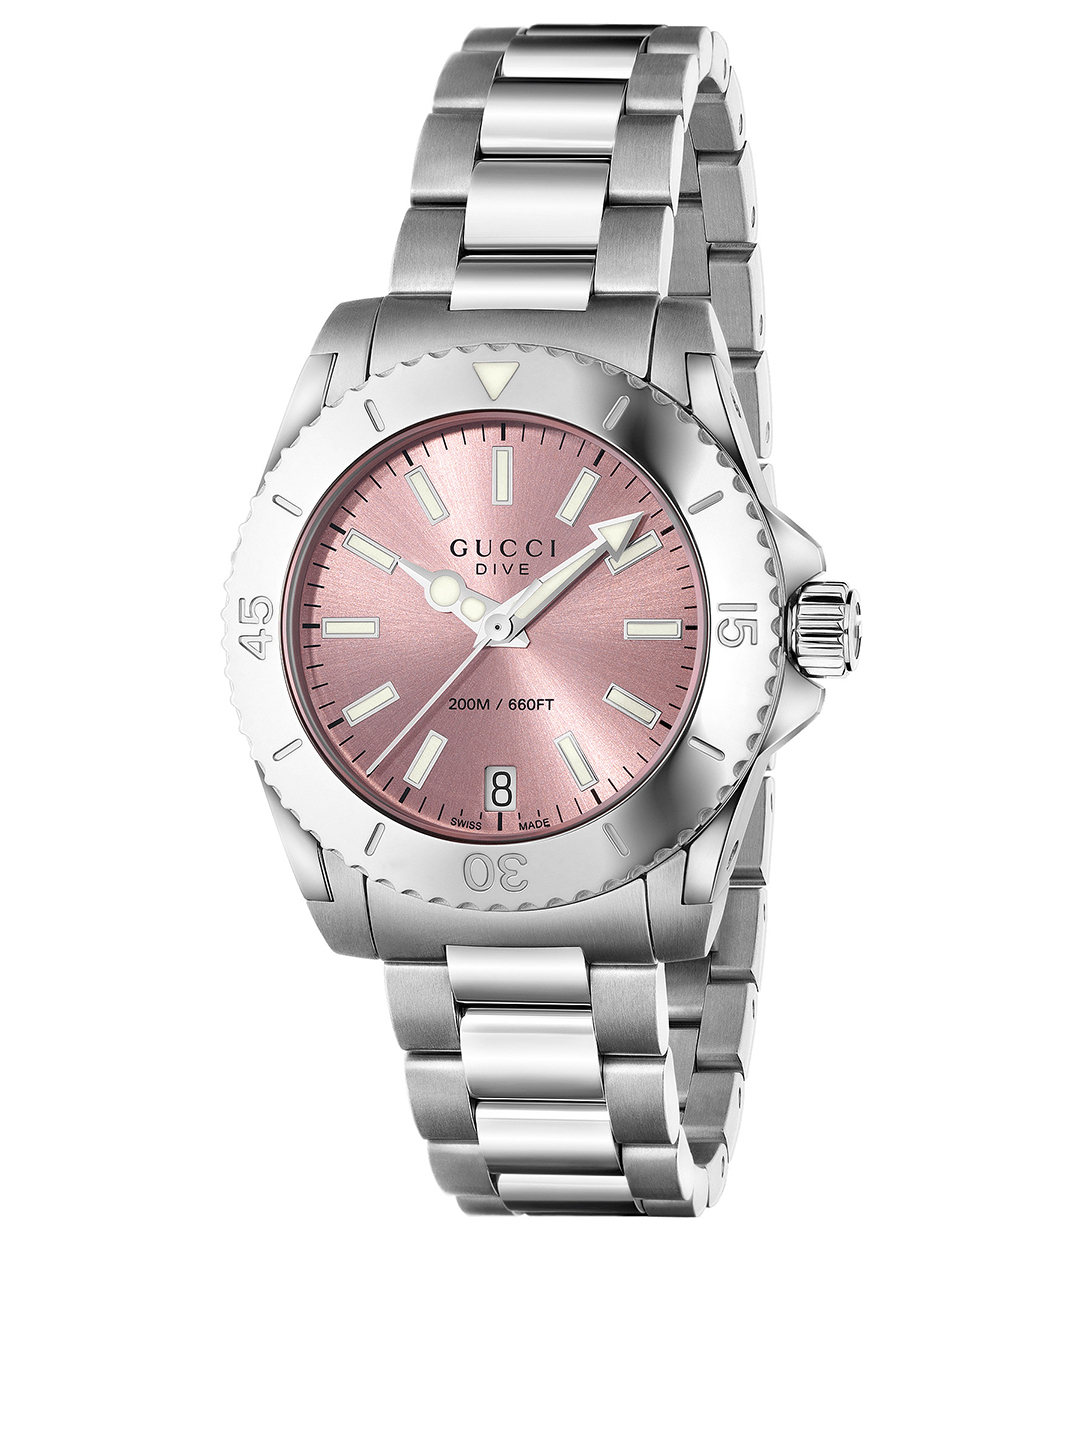 119afd4225f GUCCI Gucci Dive Stainless Steel Bracelet Watch